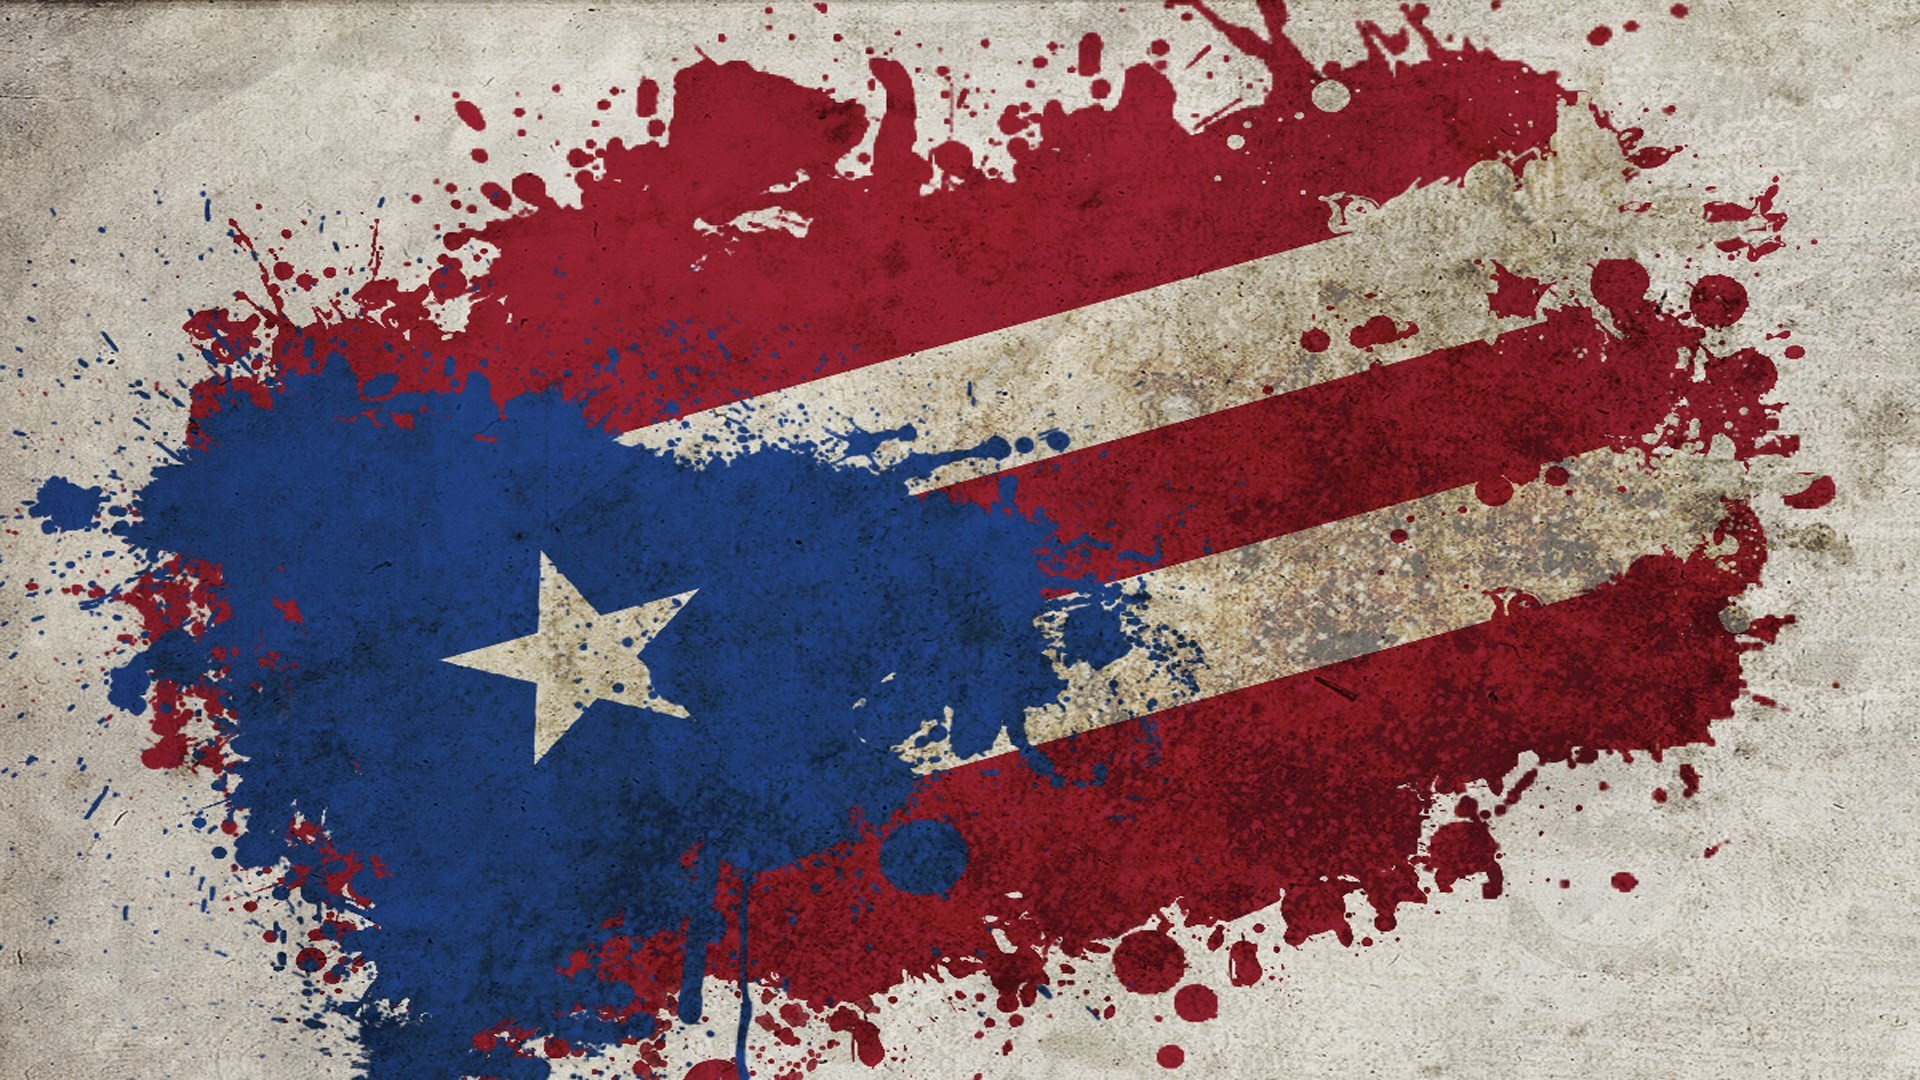 1920x1080 flag of puerto rico backgrounds for widescreen (Burleigh Waite )